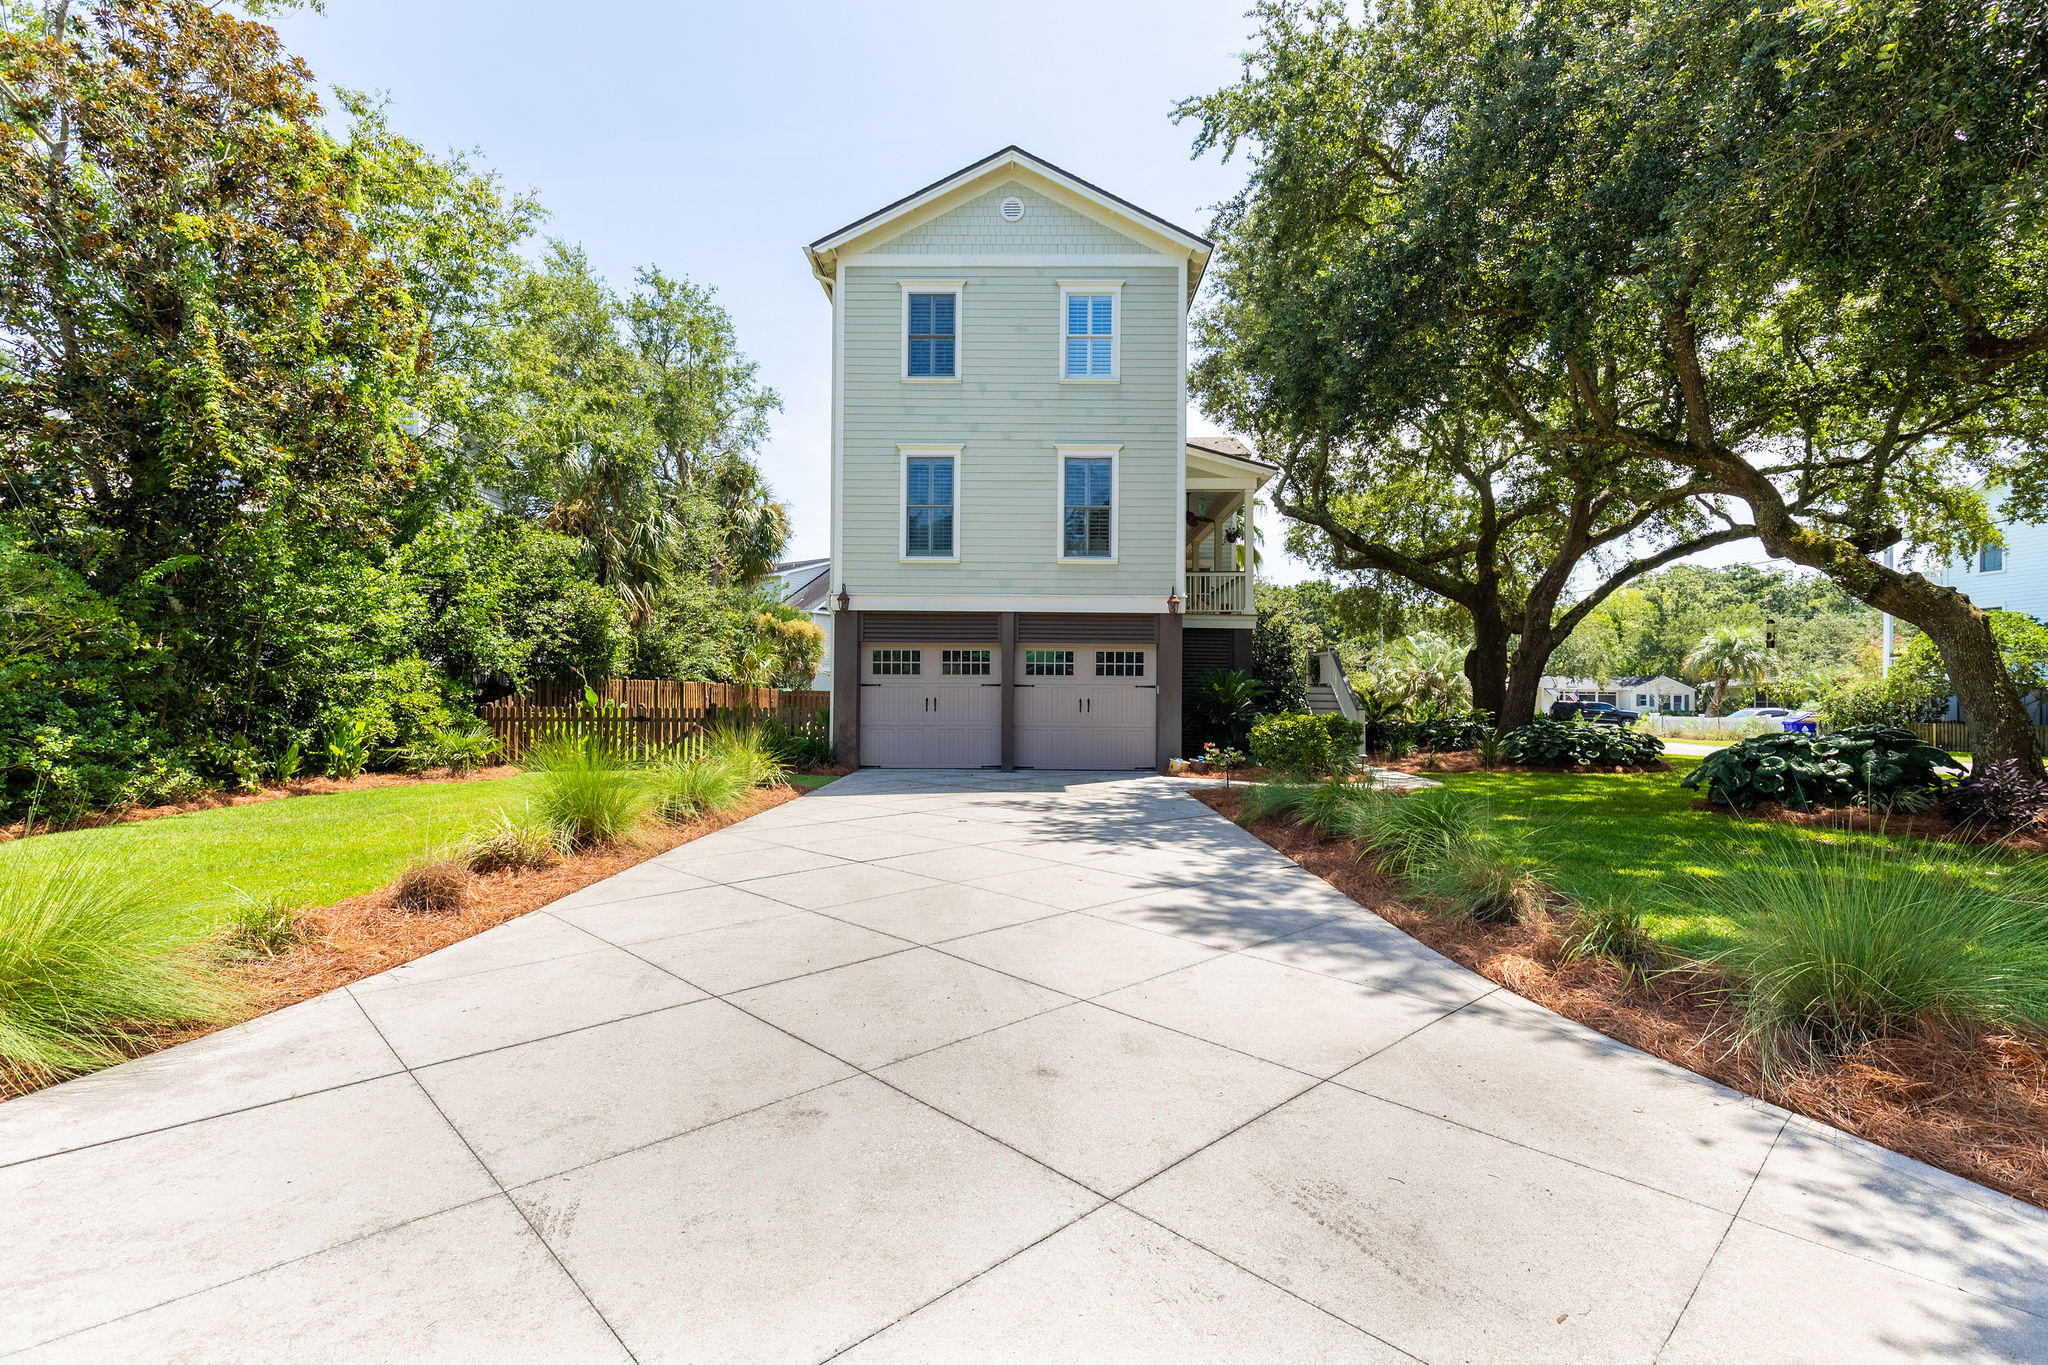 Old Mt Pleasant Homes For Sale - 920 Royall, Mount Pleasant, SC - 28